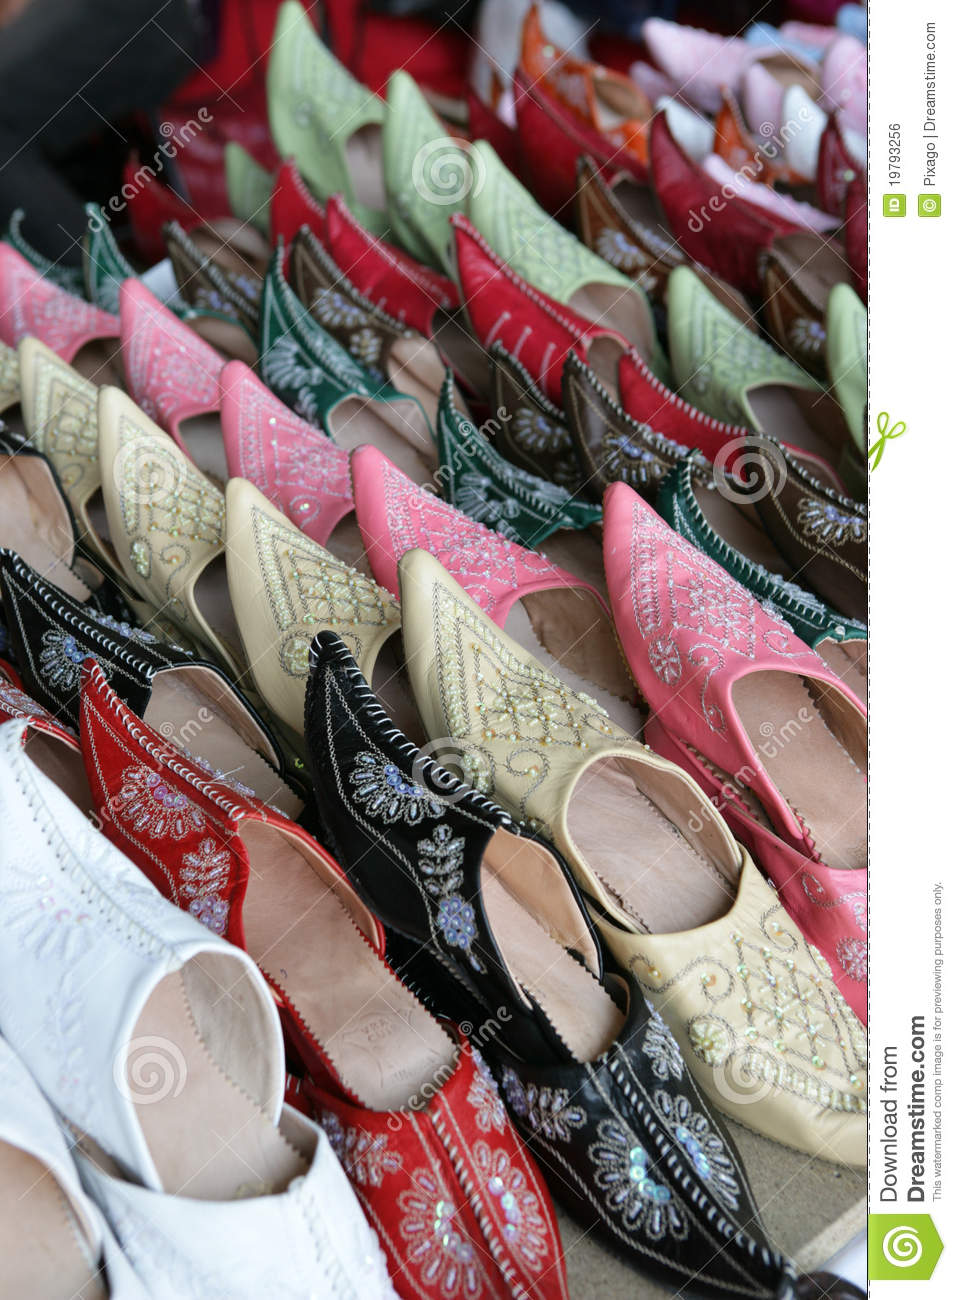 Slipper Stand Designs : Slippers royalty free stock image